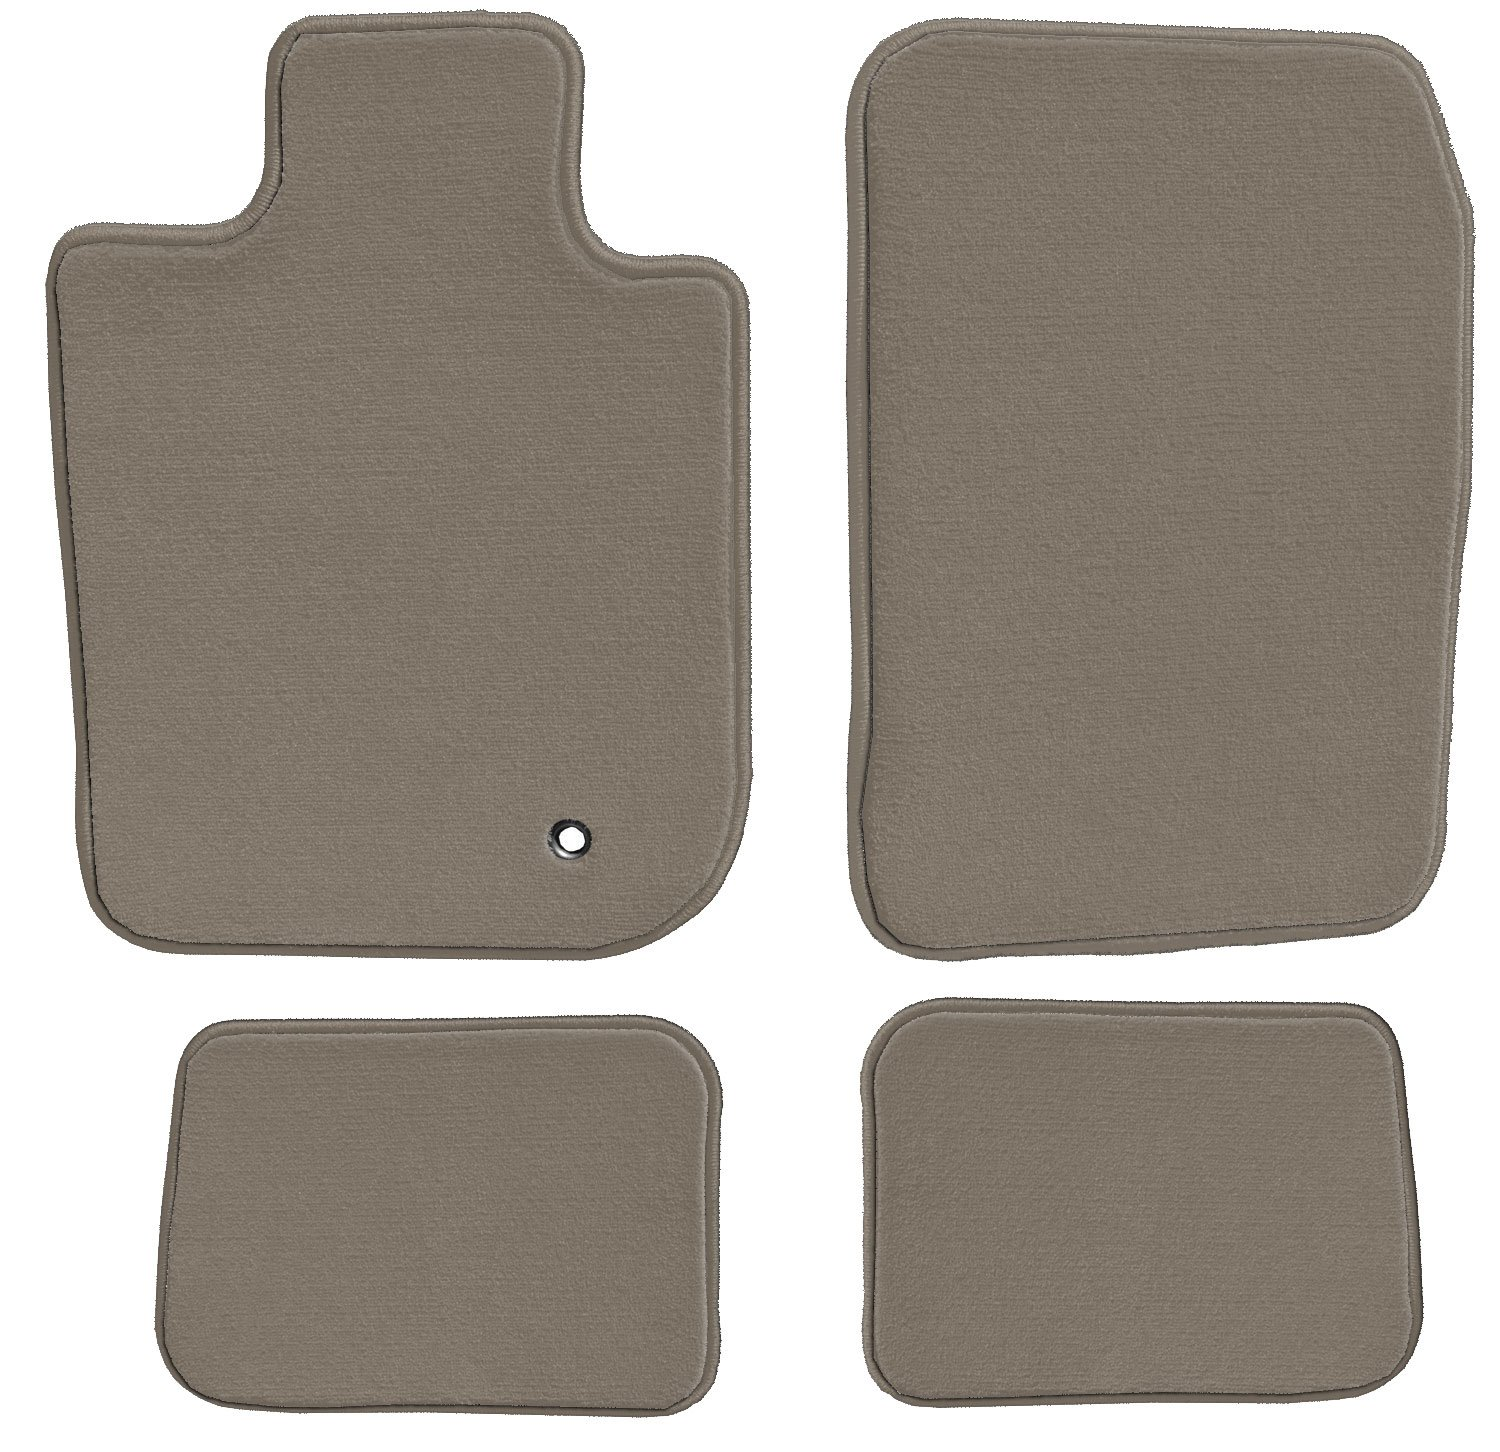 1990 1996 Chevrolet Corsica Beige Loop Driver 1992 1993 1991 1989 1995 Passenger /& Rear 1994 1988 GGBAILEY D4308A-S1A-BG-LP Custom Fit Automotive Carpet Floor Mats for 1987